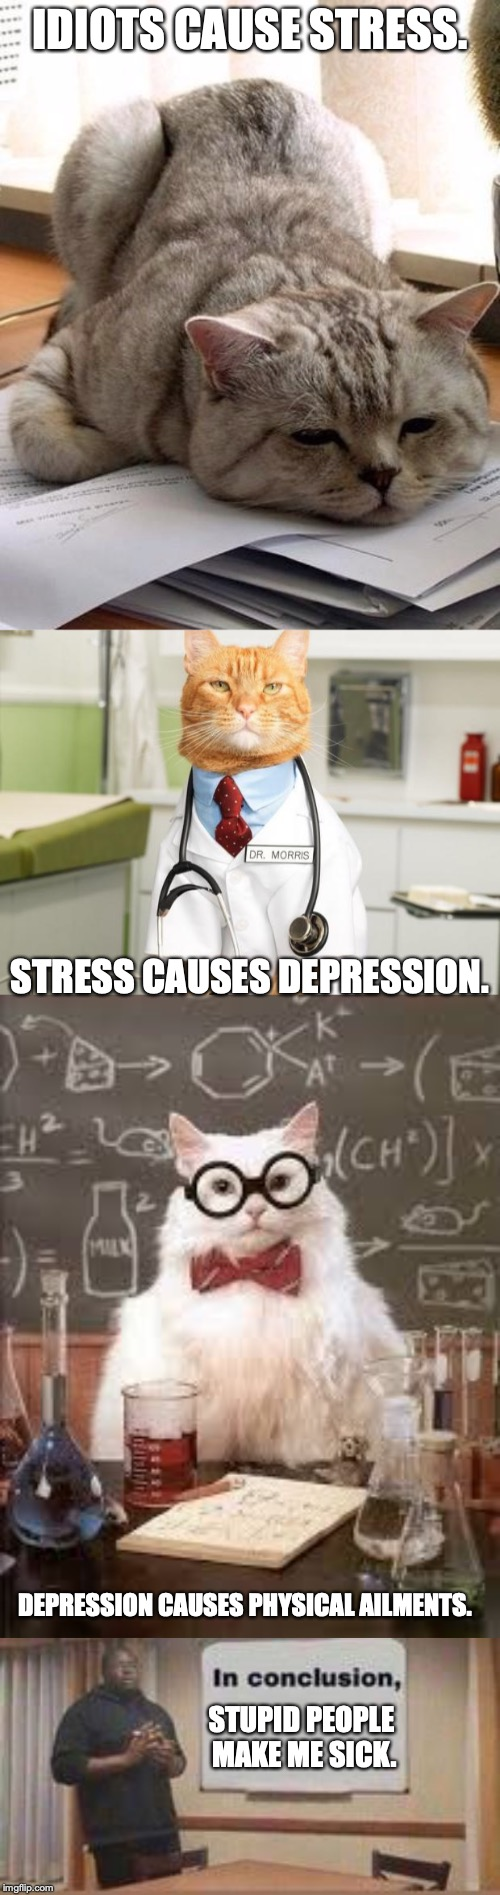 Logic, my friends. Logic everywhere. | IDIOTS CAUSE STRESS. STRESS CAUSES DEPRESSION. DEPRESSION CAUSES PHYSICAL AILMENTS. STUPID PEOPLE MAKE ME SICK. | image tagged in cat doctor,smart cat,tired cat,in conclusion,punman21 | made w/ Imgflip meme maker